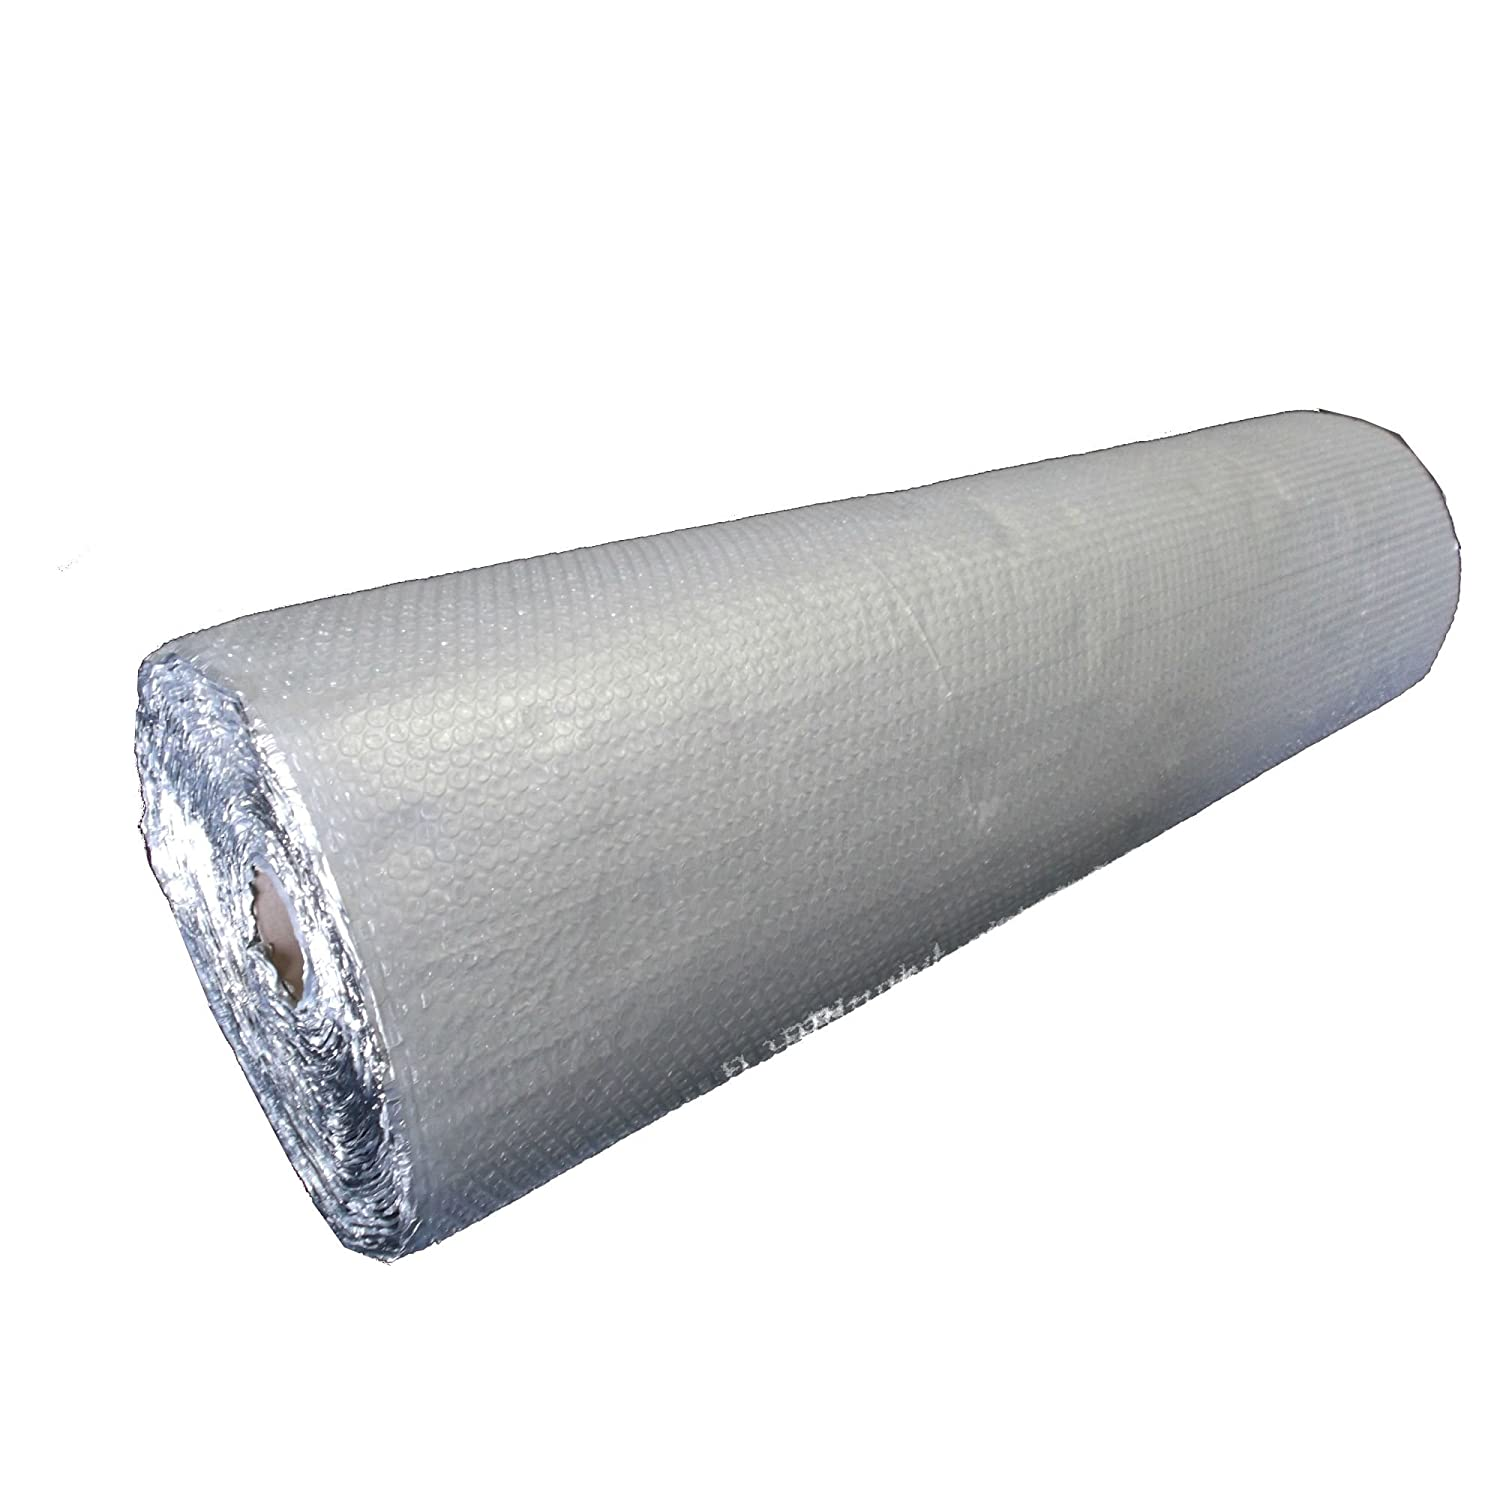 1.2m X 10m 12 SQM Single Aluminium Bubble Insulation FOIL LOFT Bestport (Europe) Ltd